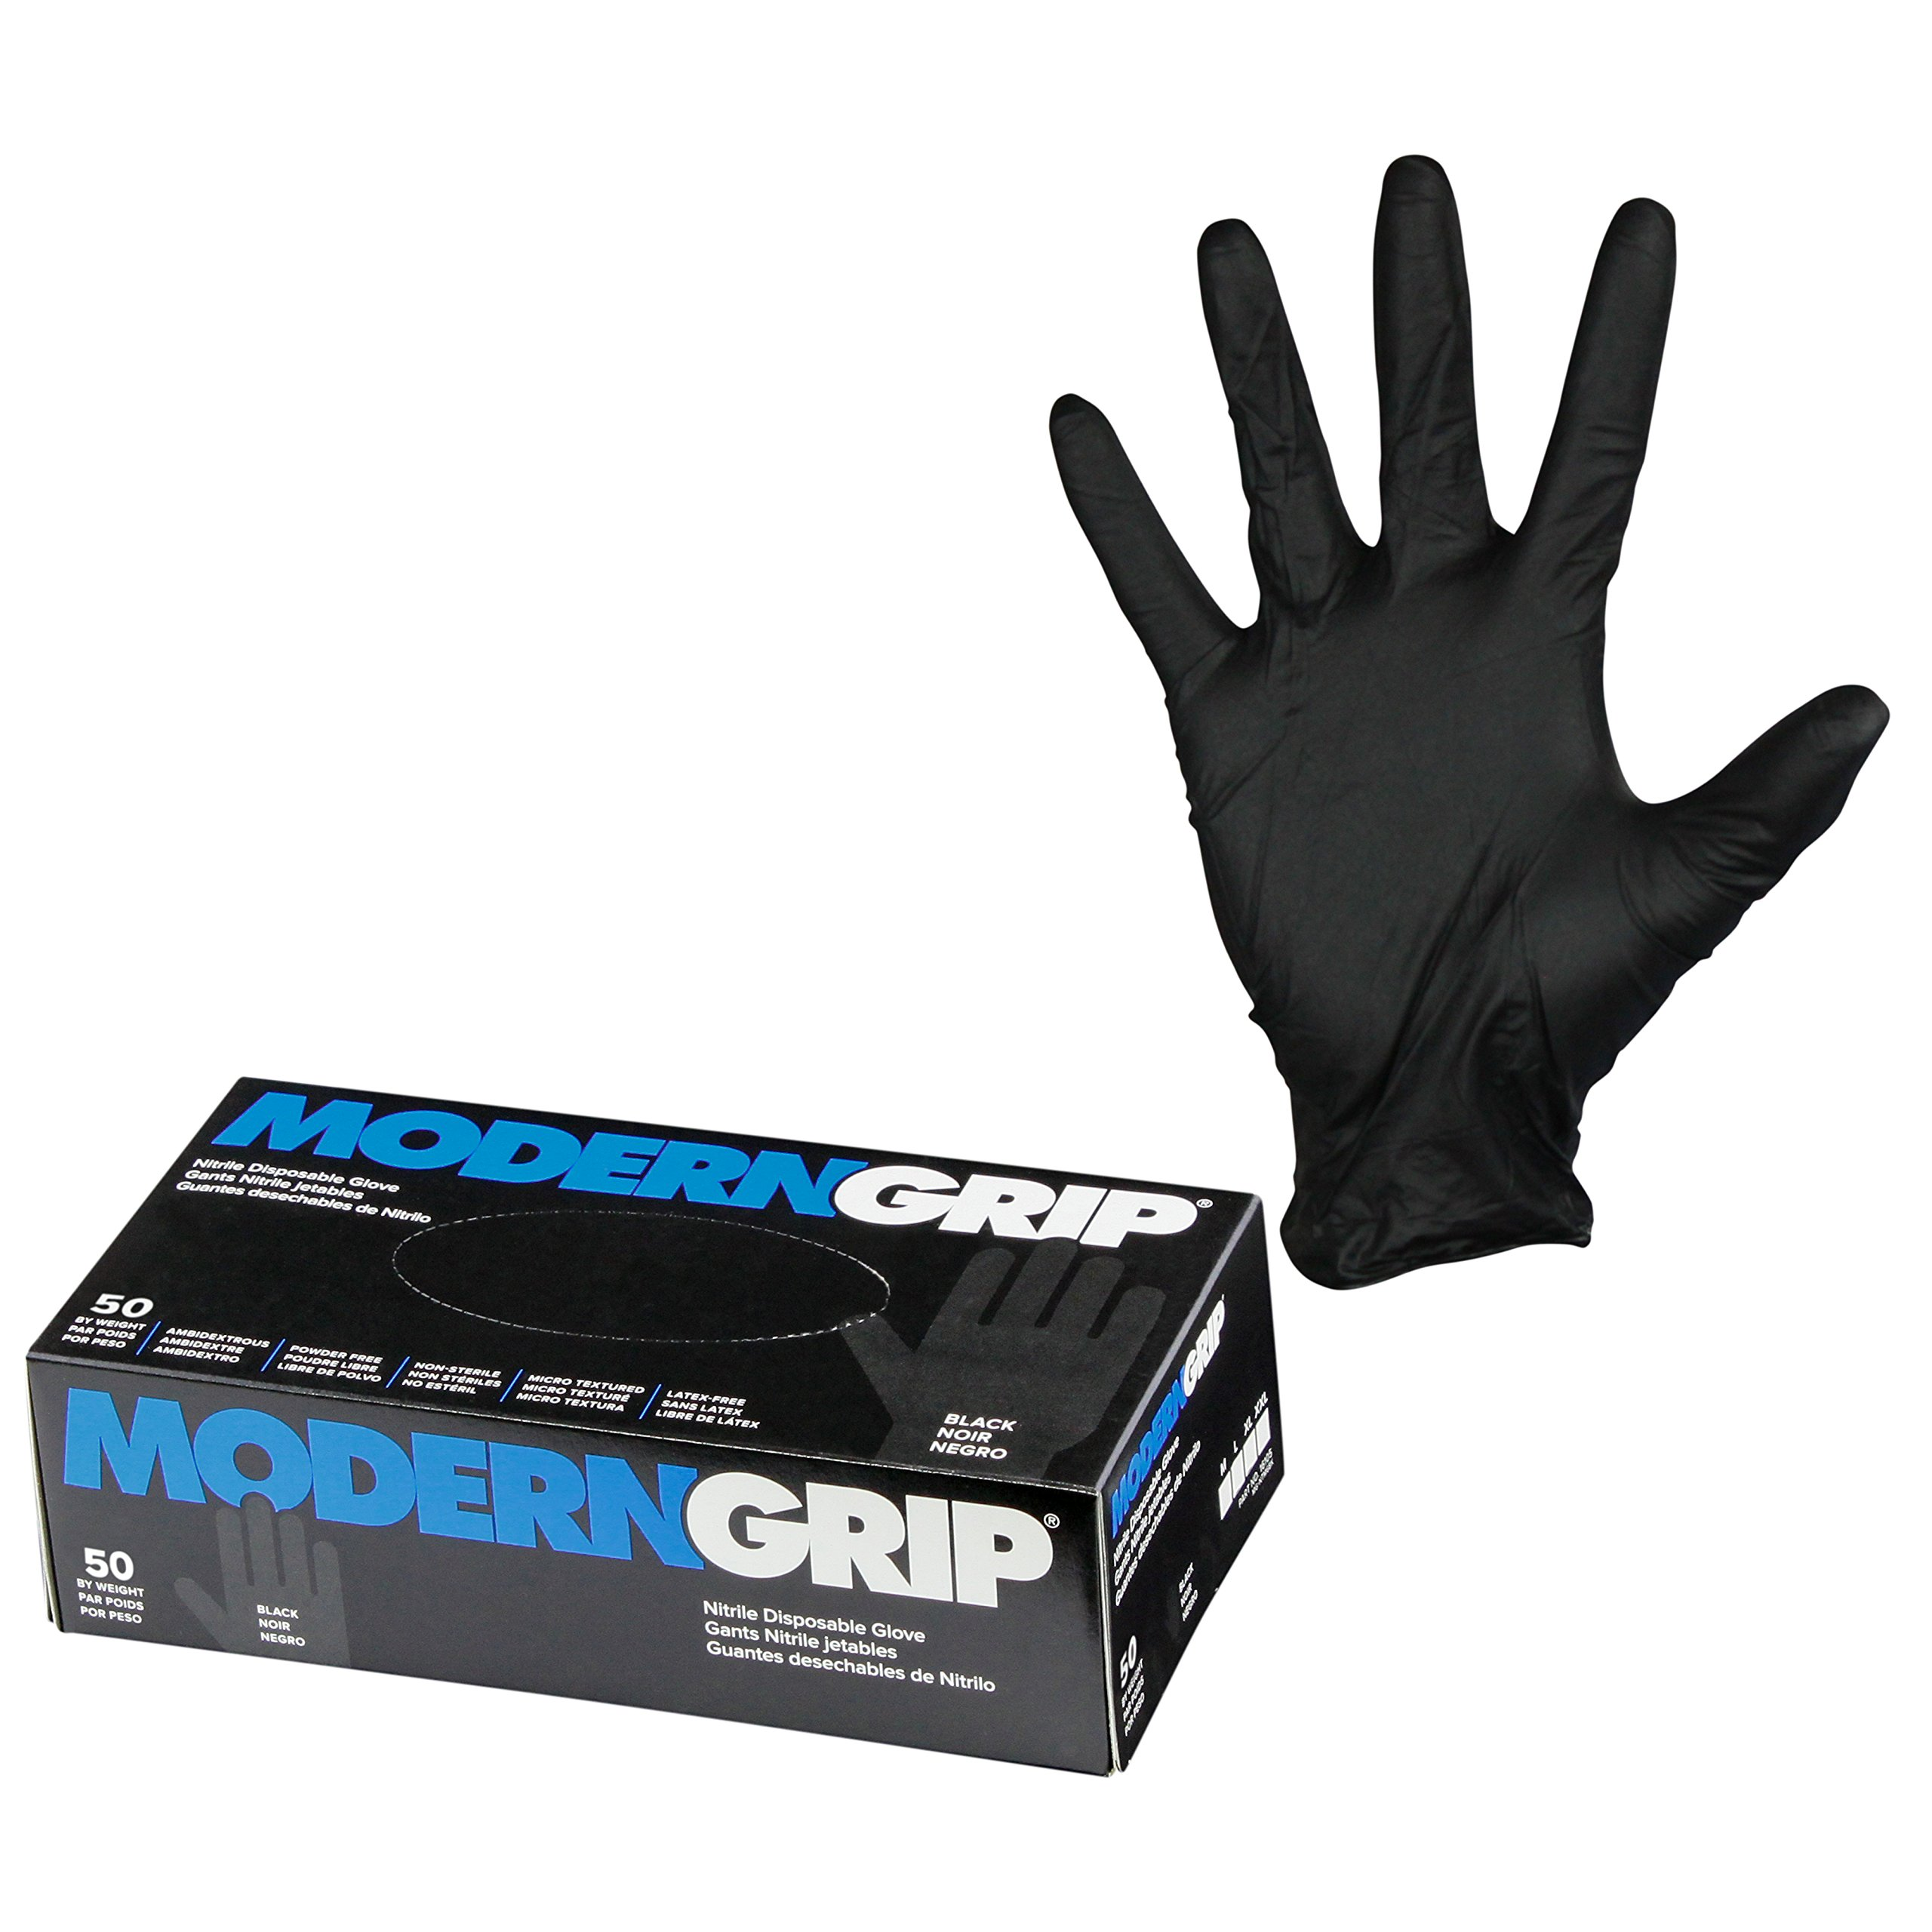 Modern Grip 18105-L Nitrile 8 mil Thickness Premium Disposable Gloves – Industrial and Household, Powder Free, Latex Free, Micro Textured for Superior Grip - Black - Large (50 count) by Modern Grip